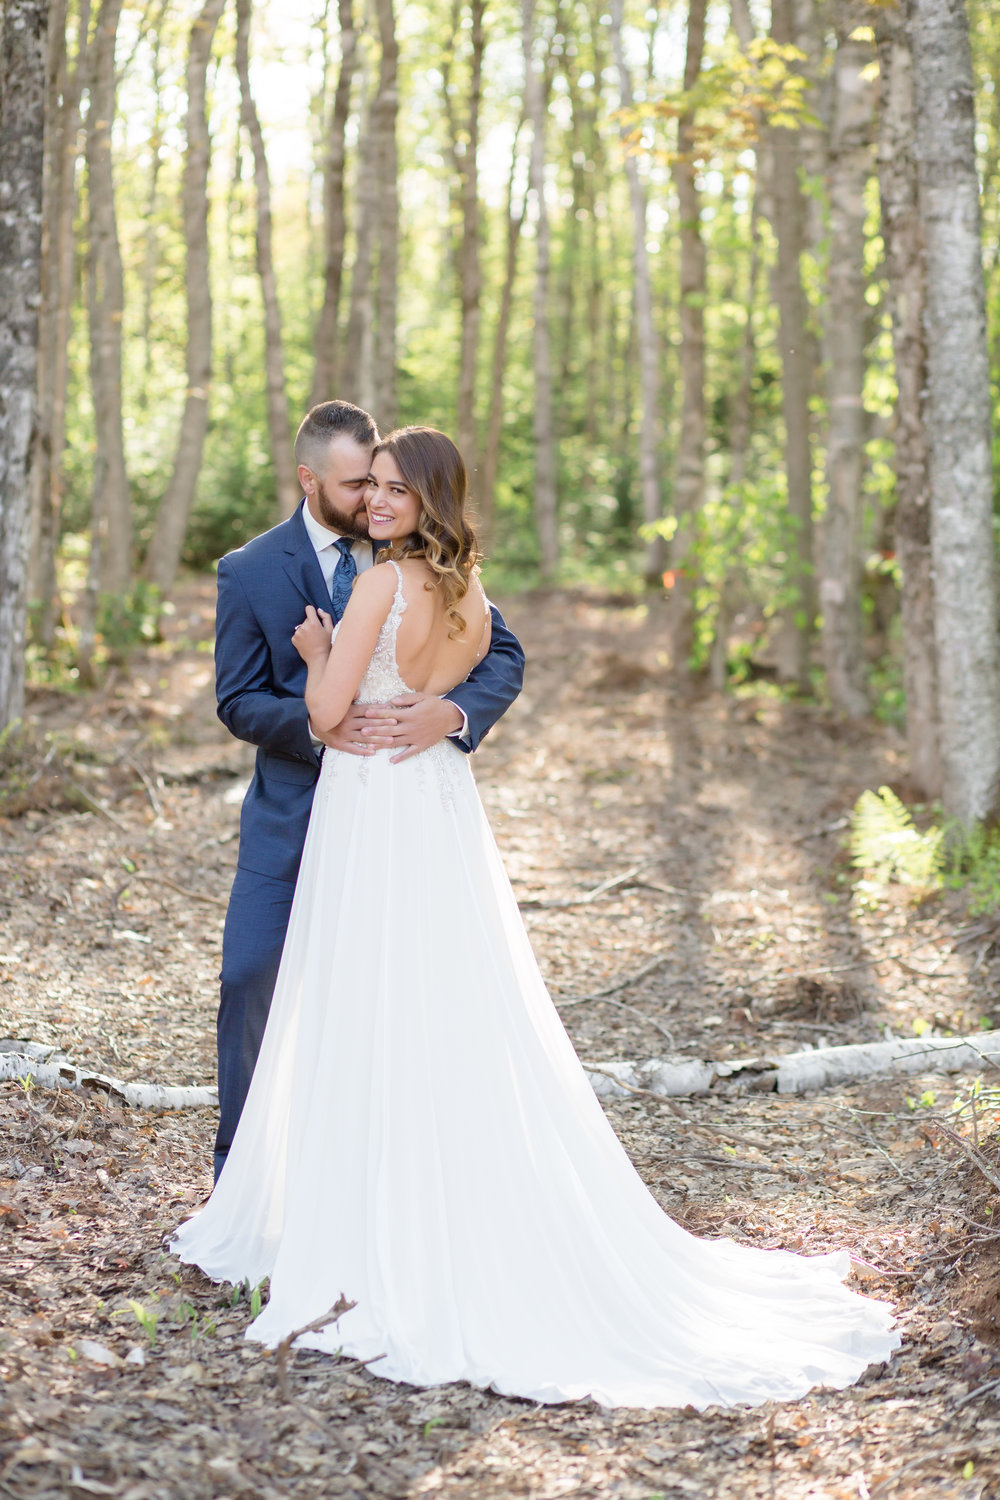 Nicole Anne Photography, Taylored Beauty, Hair by D, The Perfect Pear Bridal